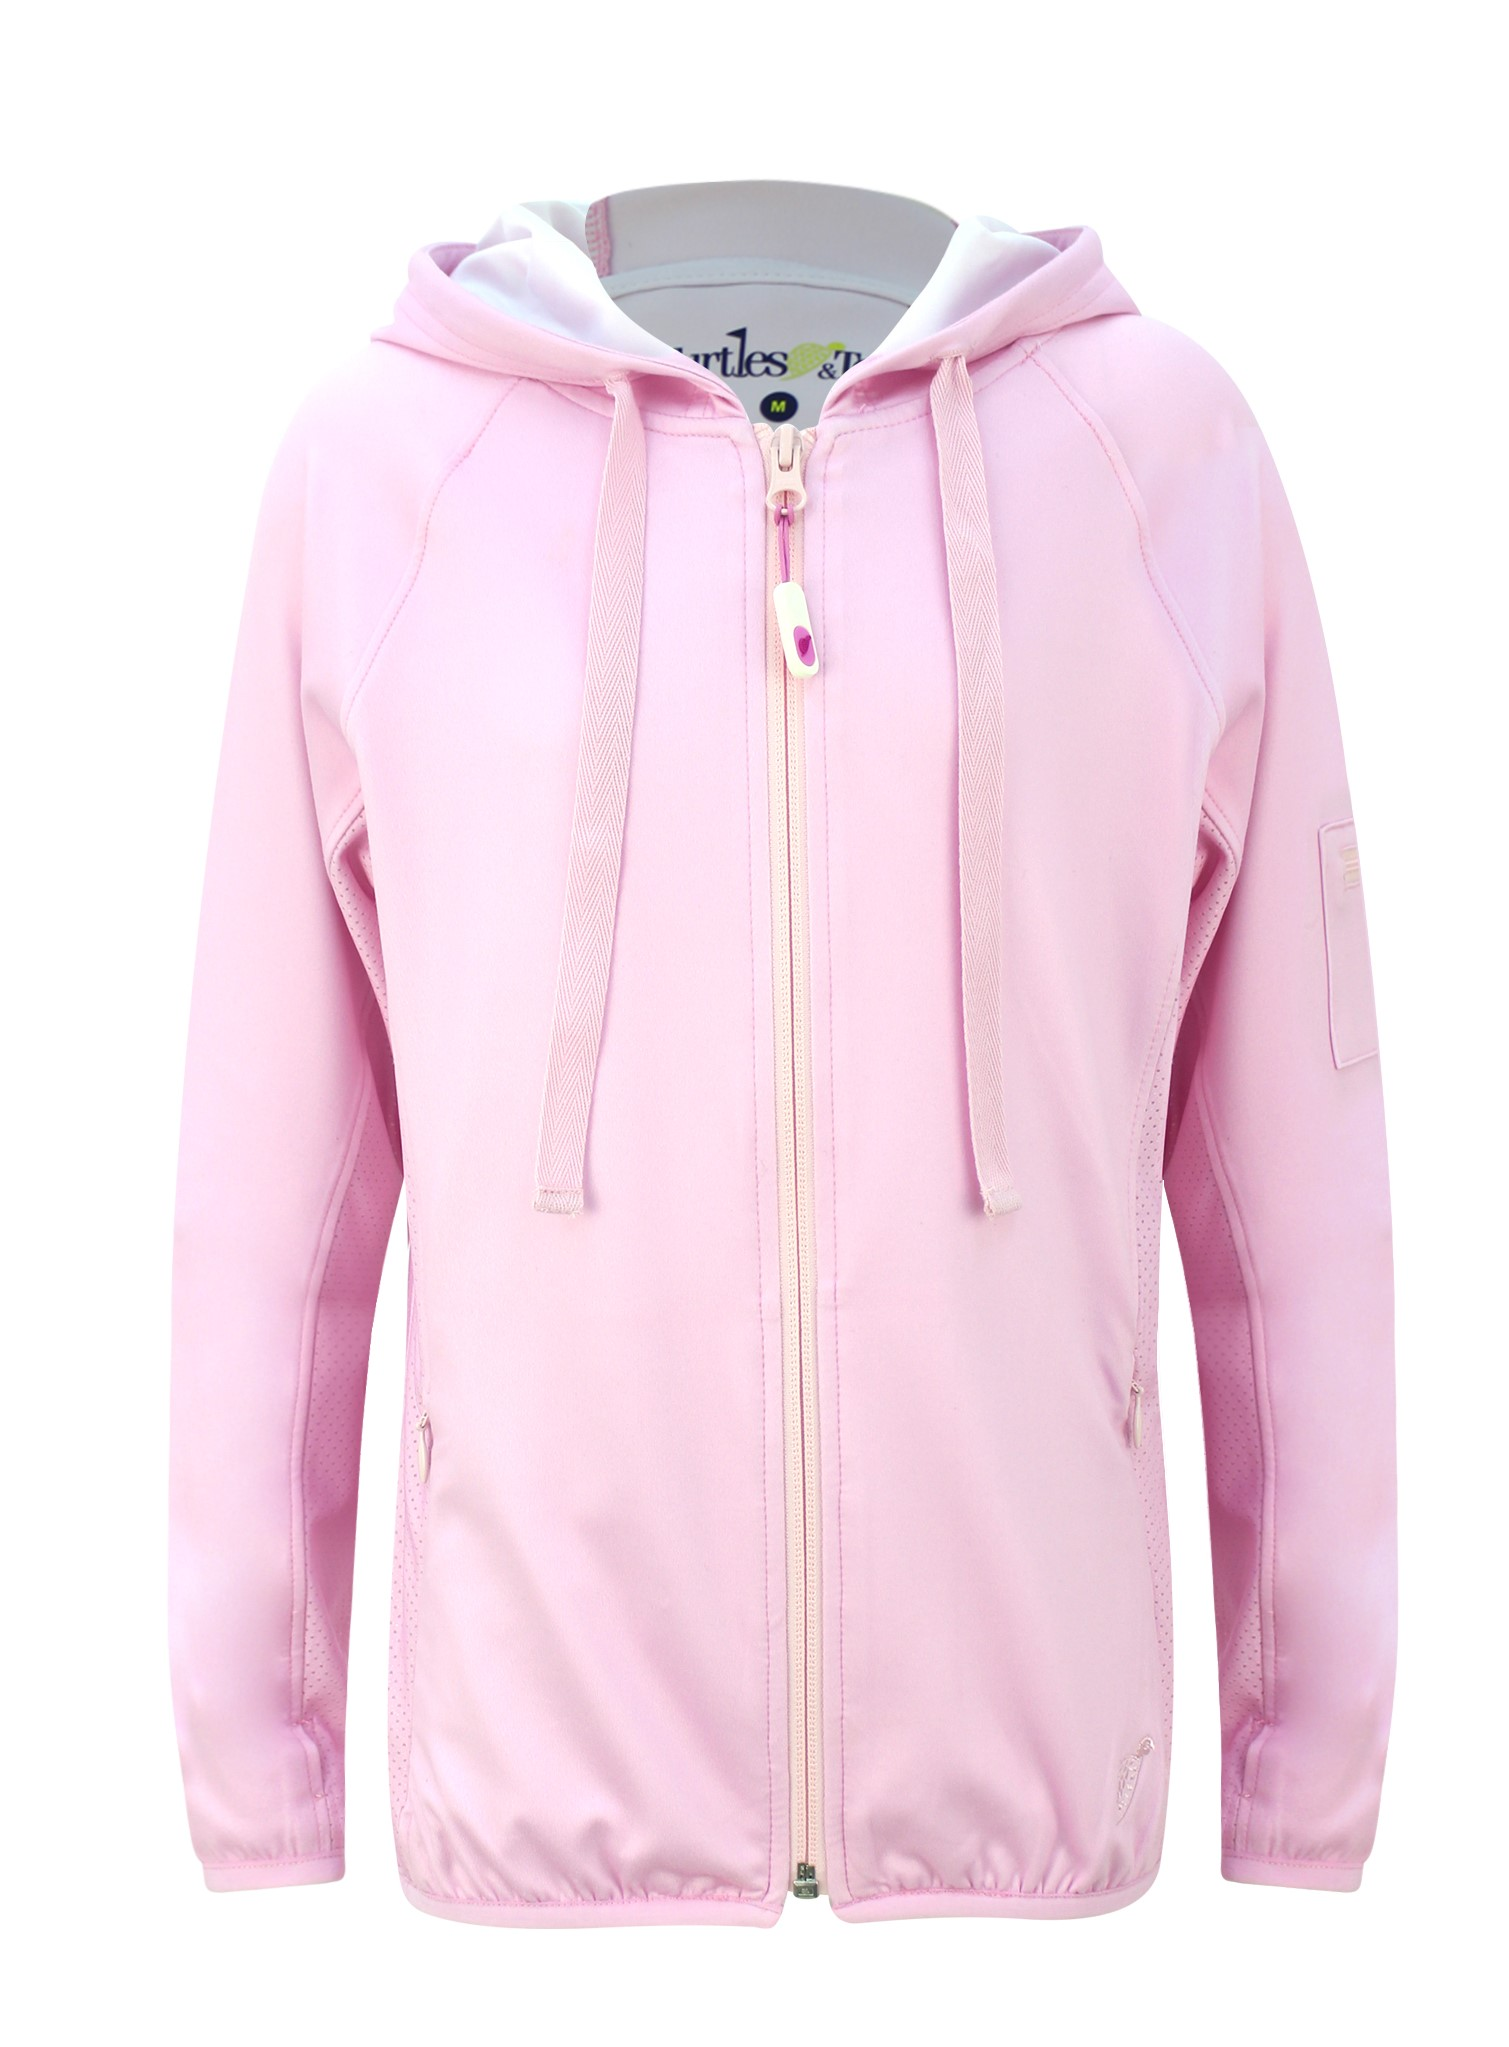 Blakely Girls Full Zip Jacket In Pink